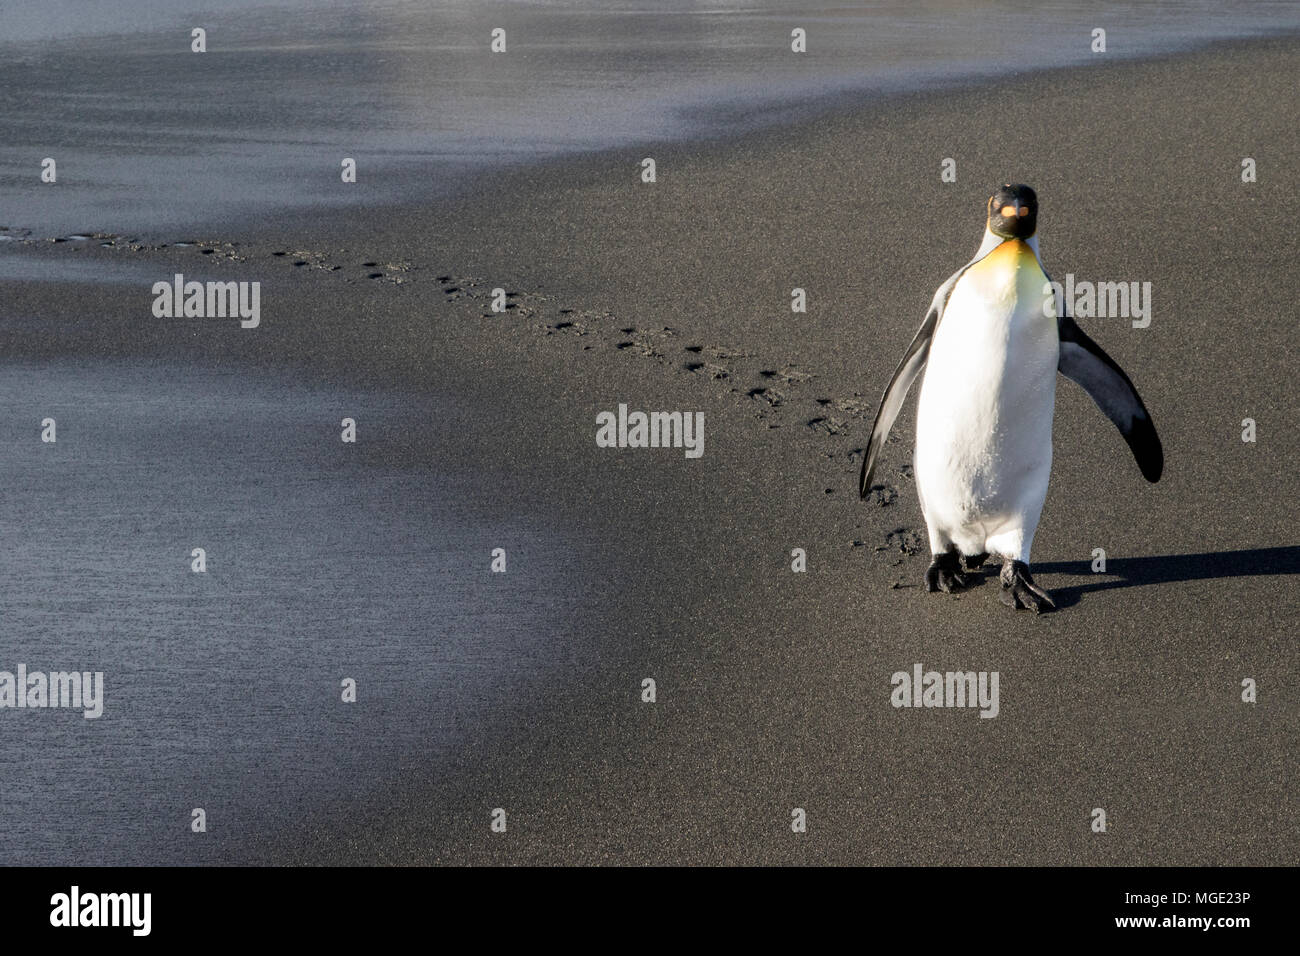 king penguin Aptenodytes patagonicus adult walking from sea to nest shwoing footprints in sand, Gold Harbour, South Georgia - Stock Image